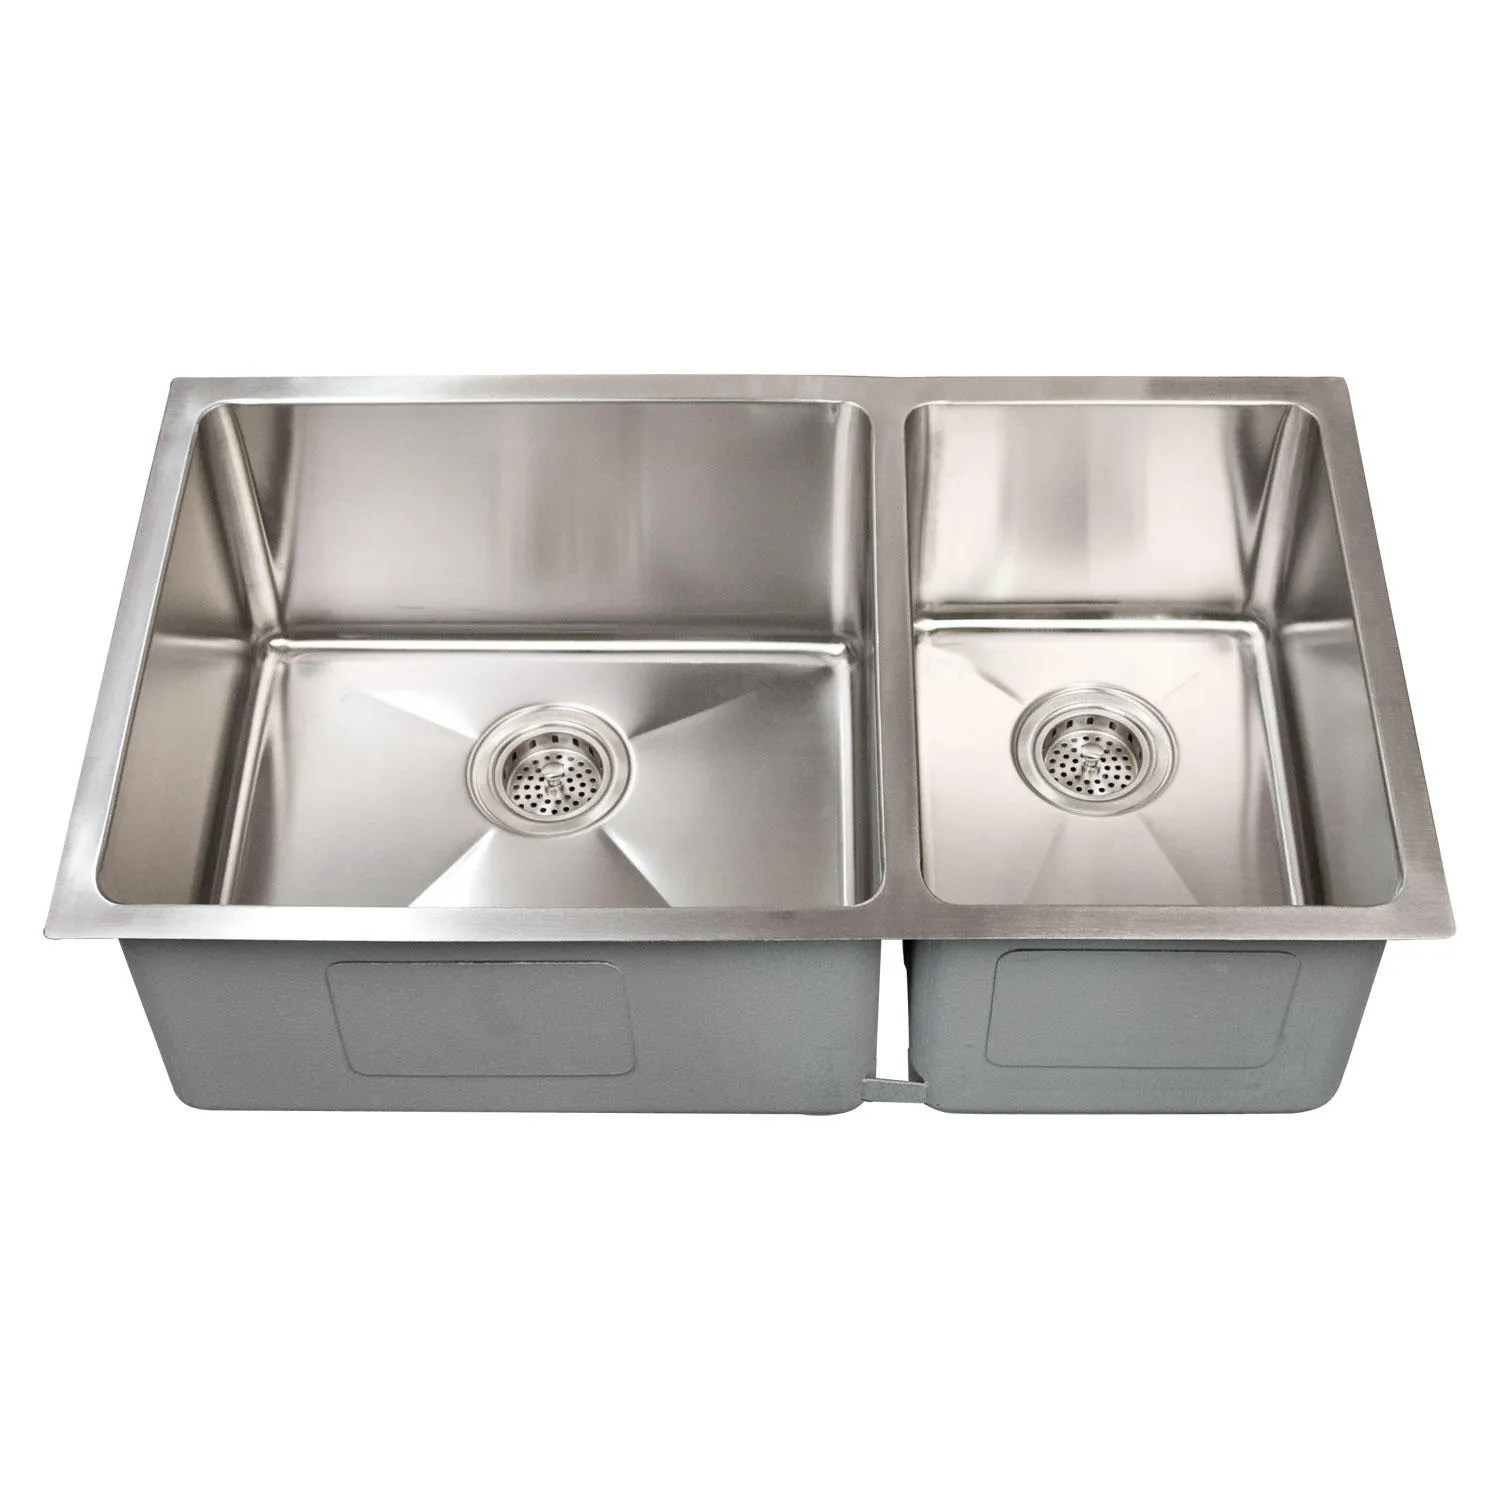 "60 40 Sink 32"" Optimum 60/40 Offset Double-bowl Stainless Steel"